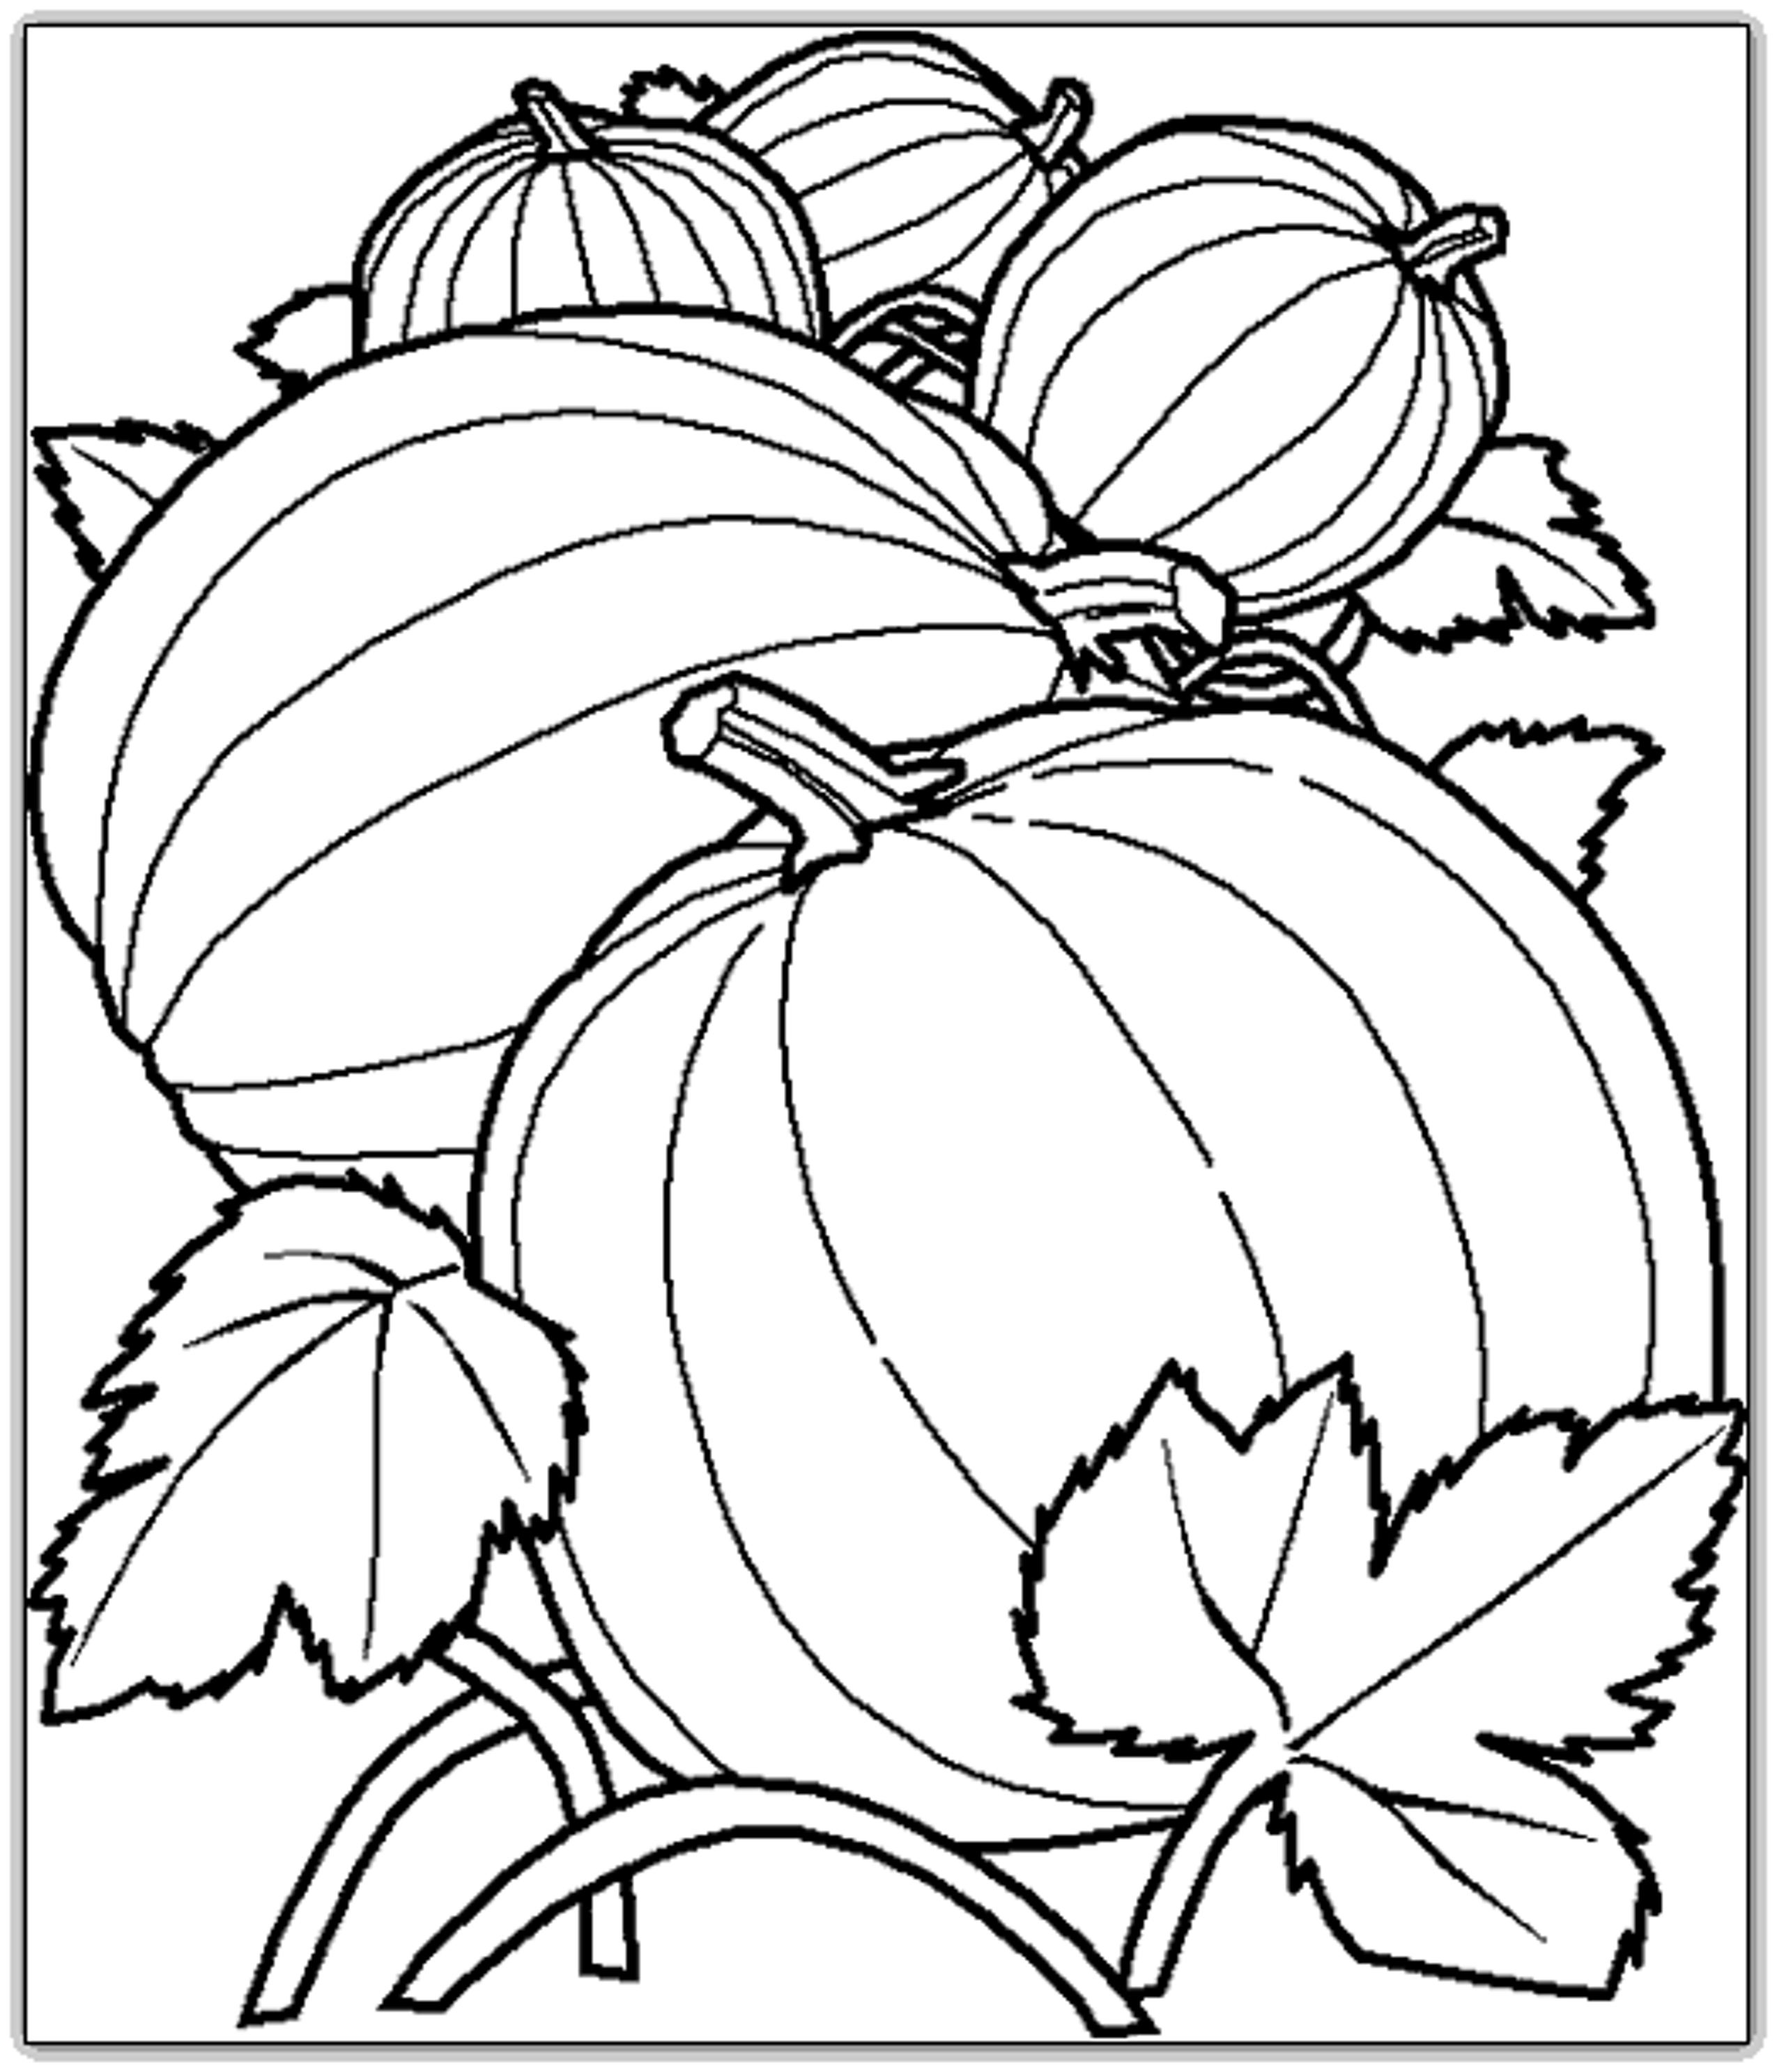 Free Printable Fall Harvest Coloring Pages At Getdrawings Com Free